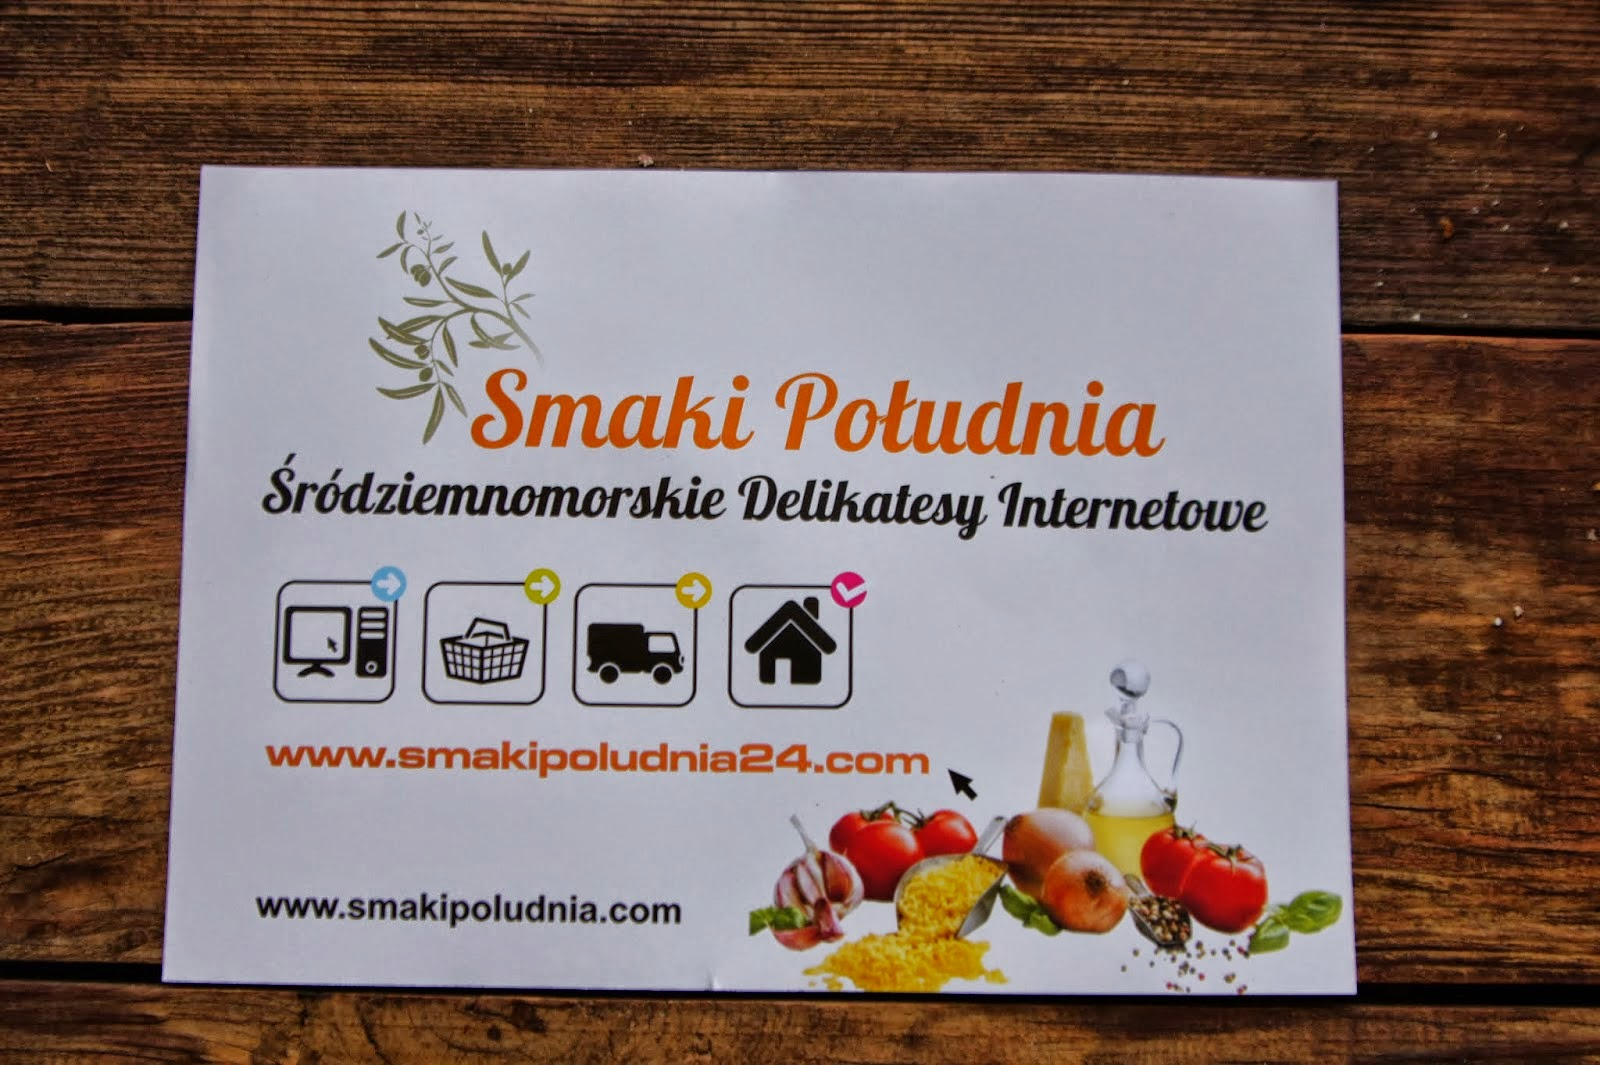 http://smakipoludnia24.pl/index.php